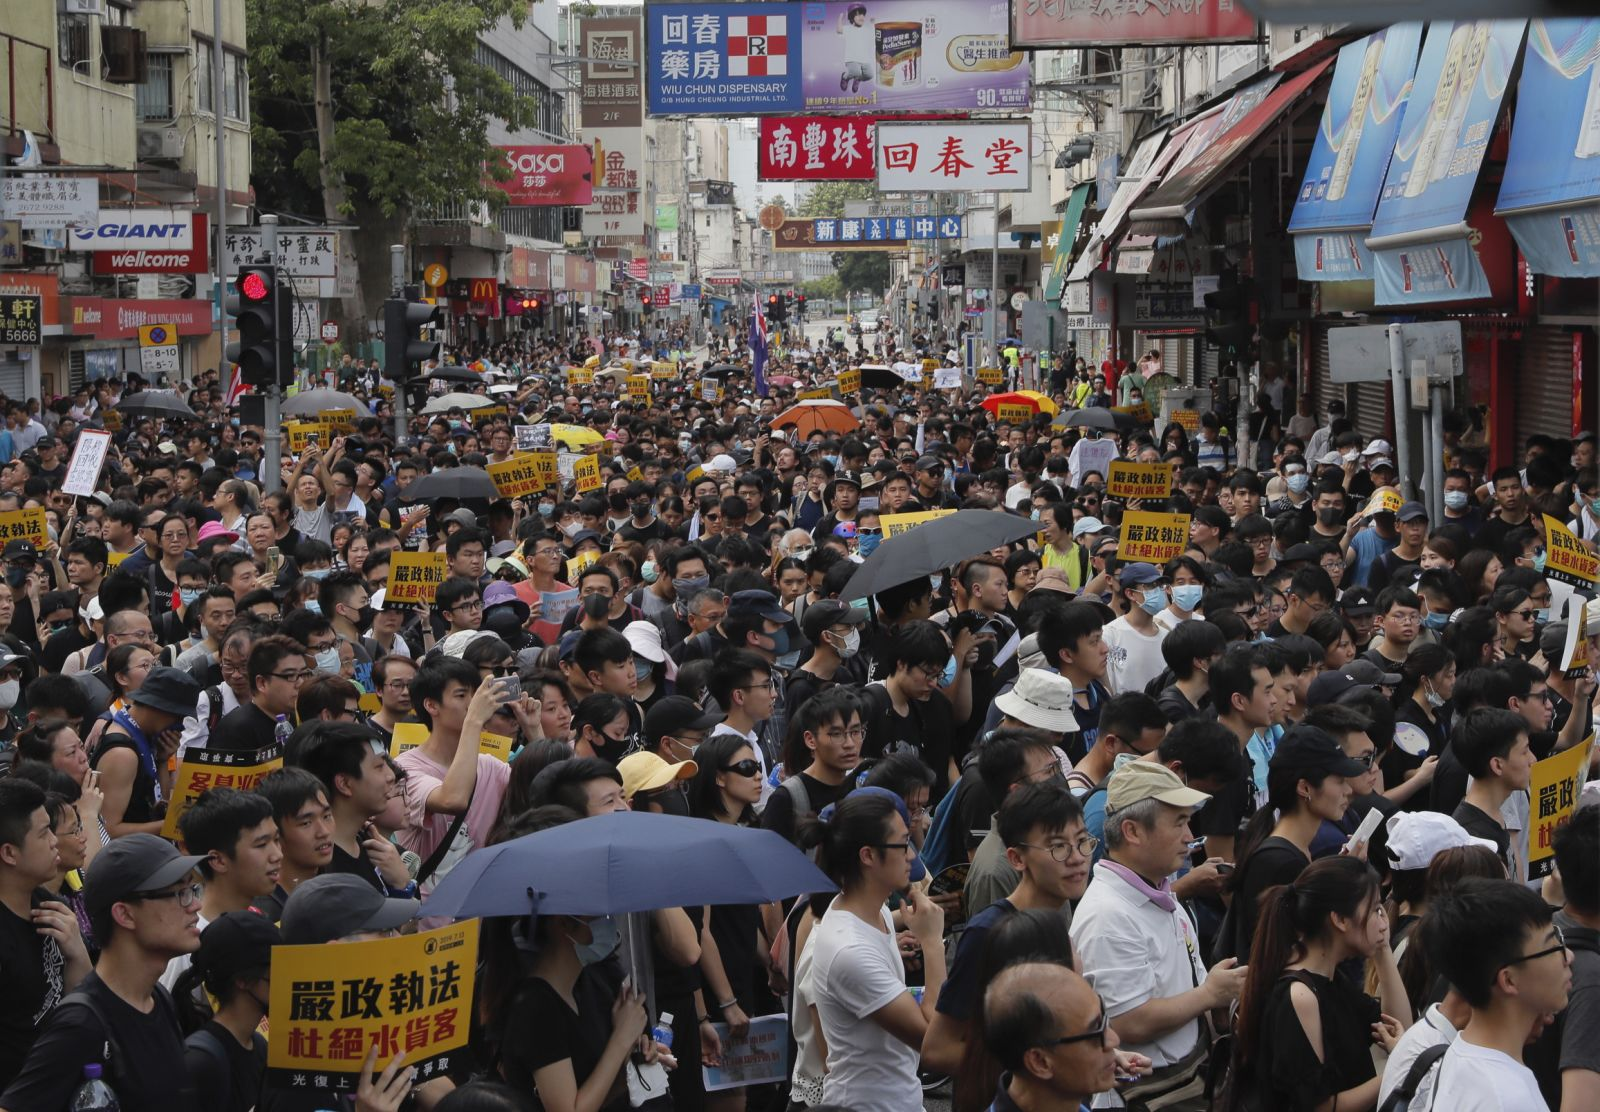 In pictures: Hong Kong protesters storm government building